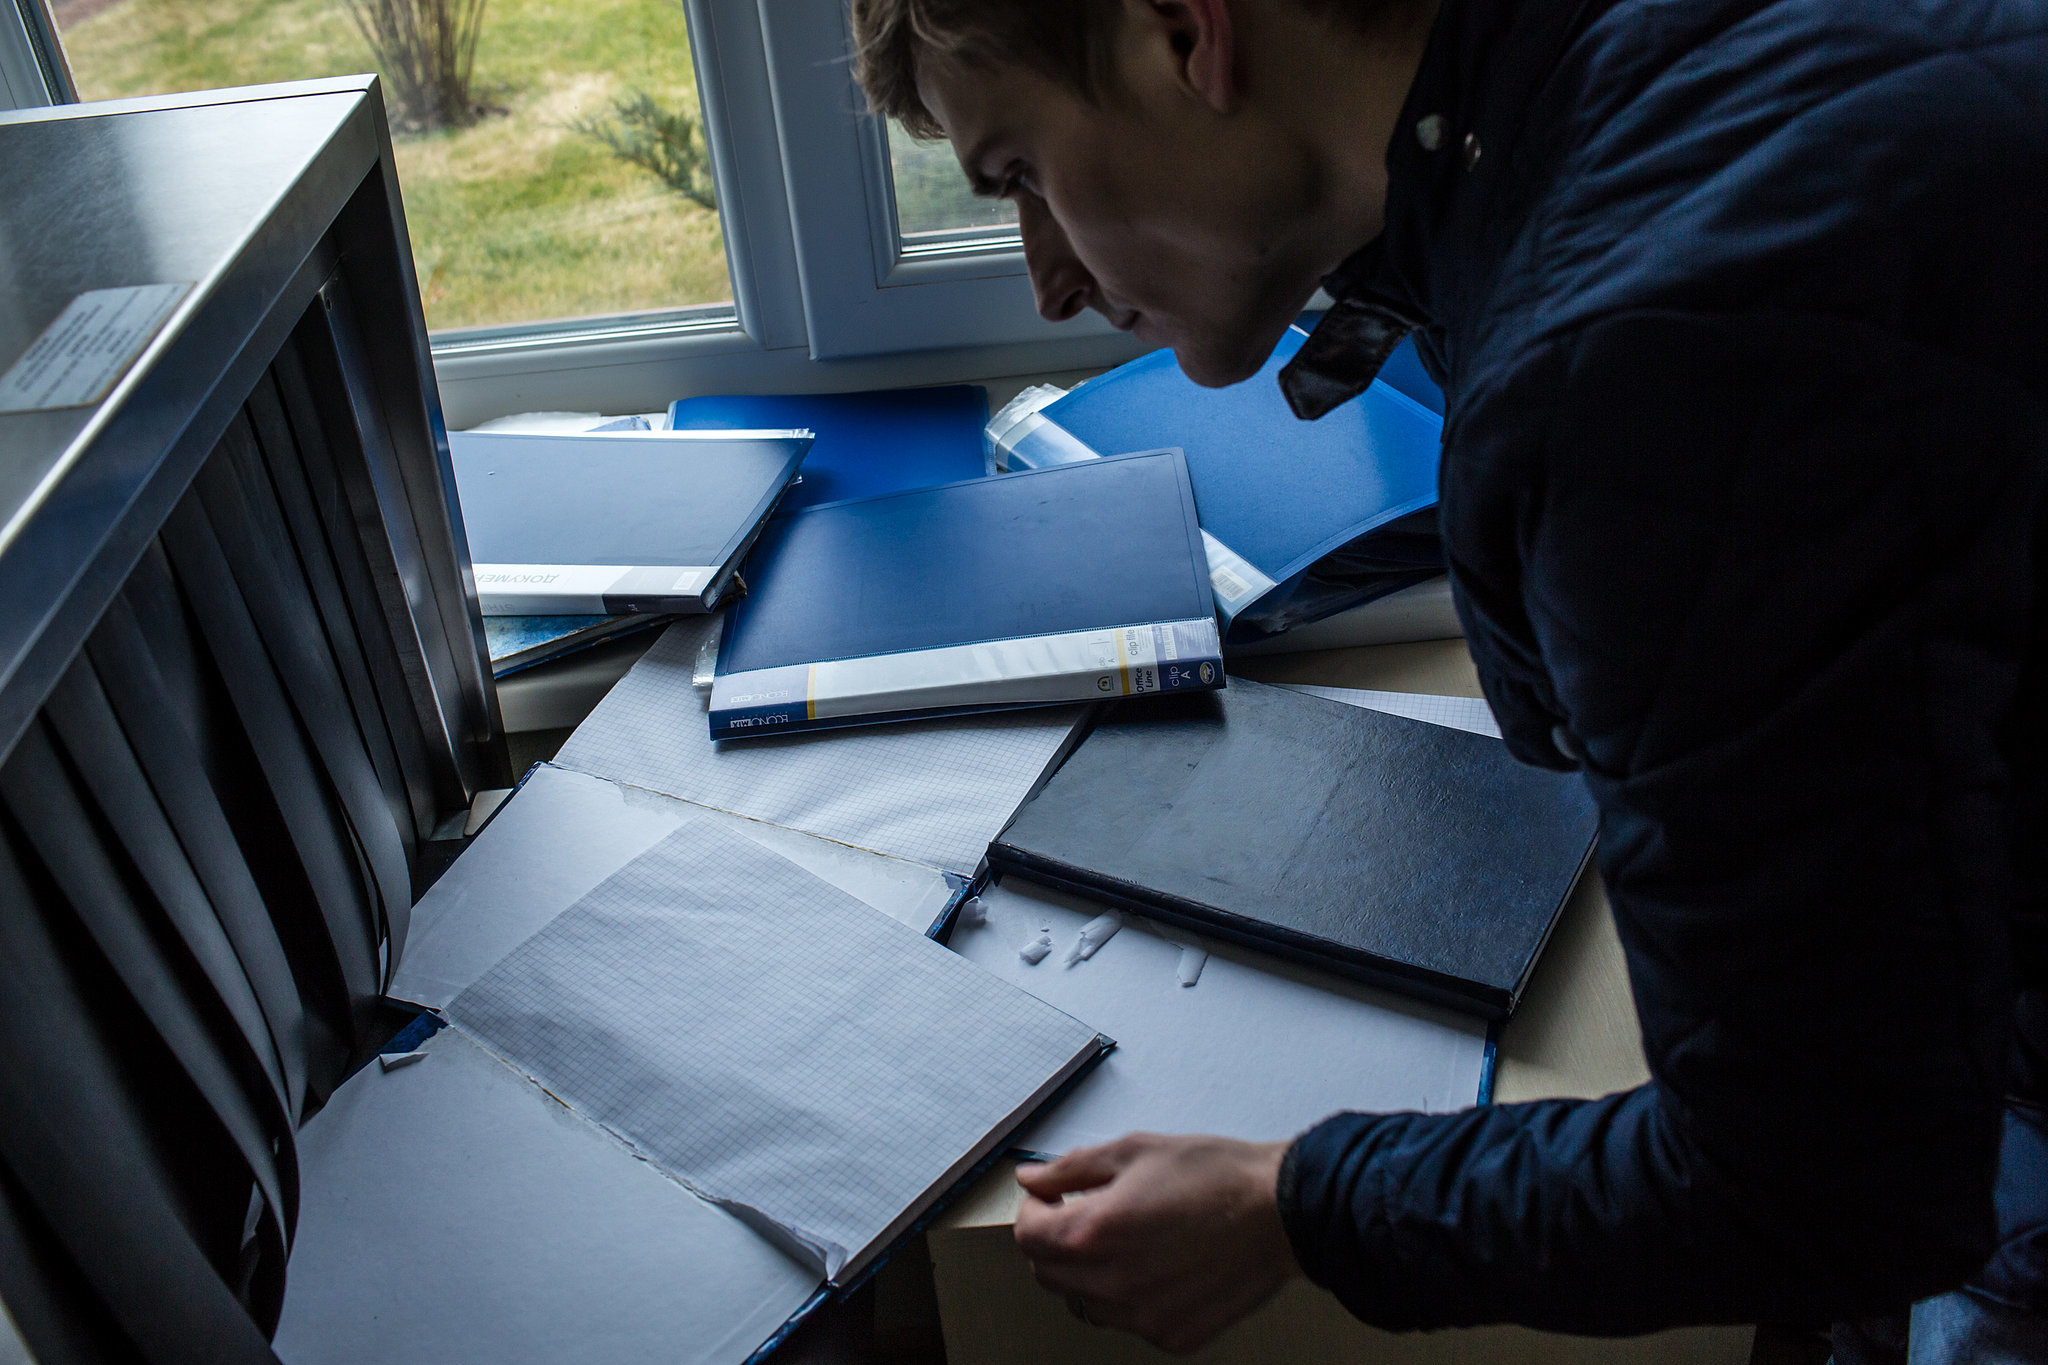 A man looked through record books in one of the security booths on the estate.